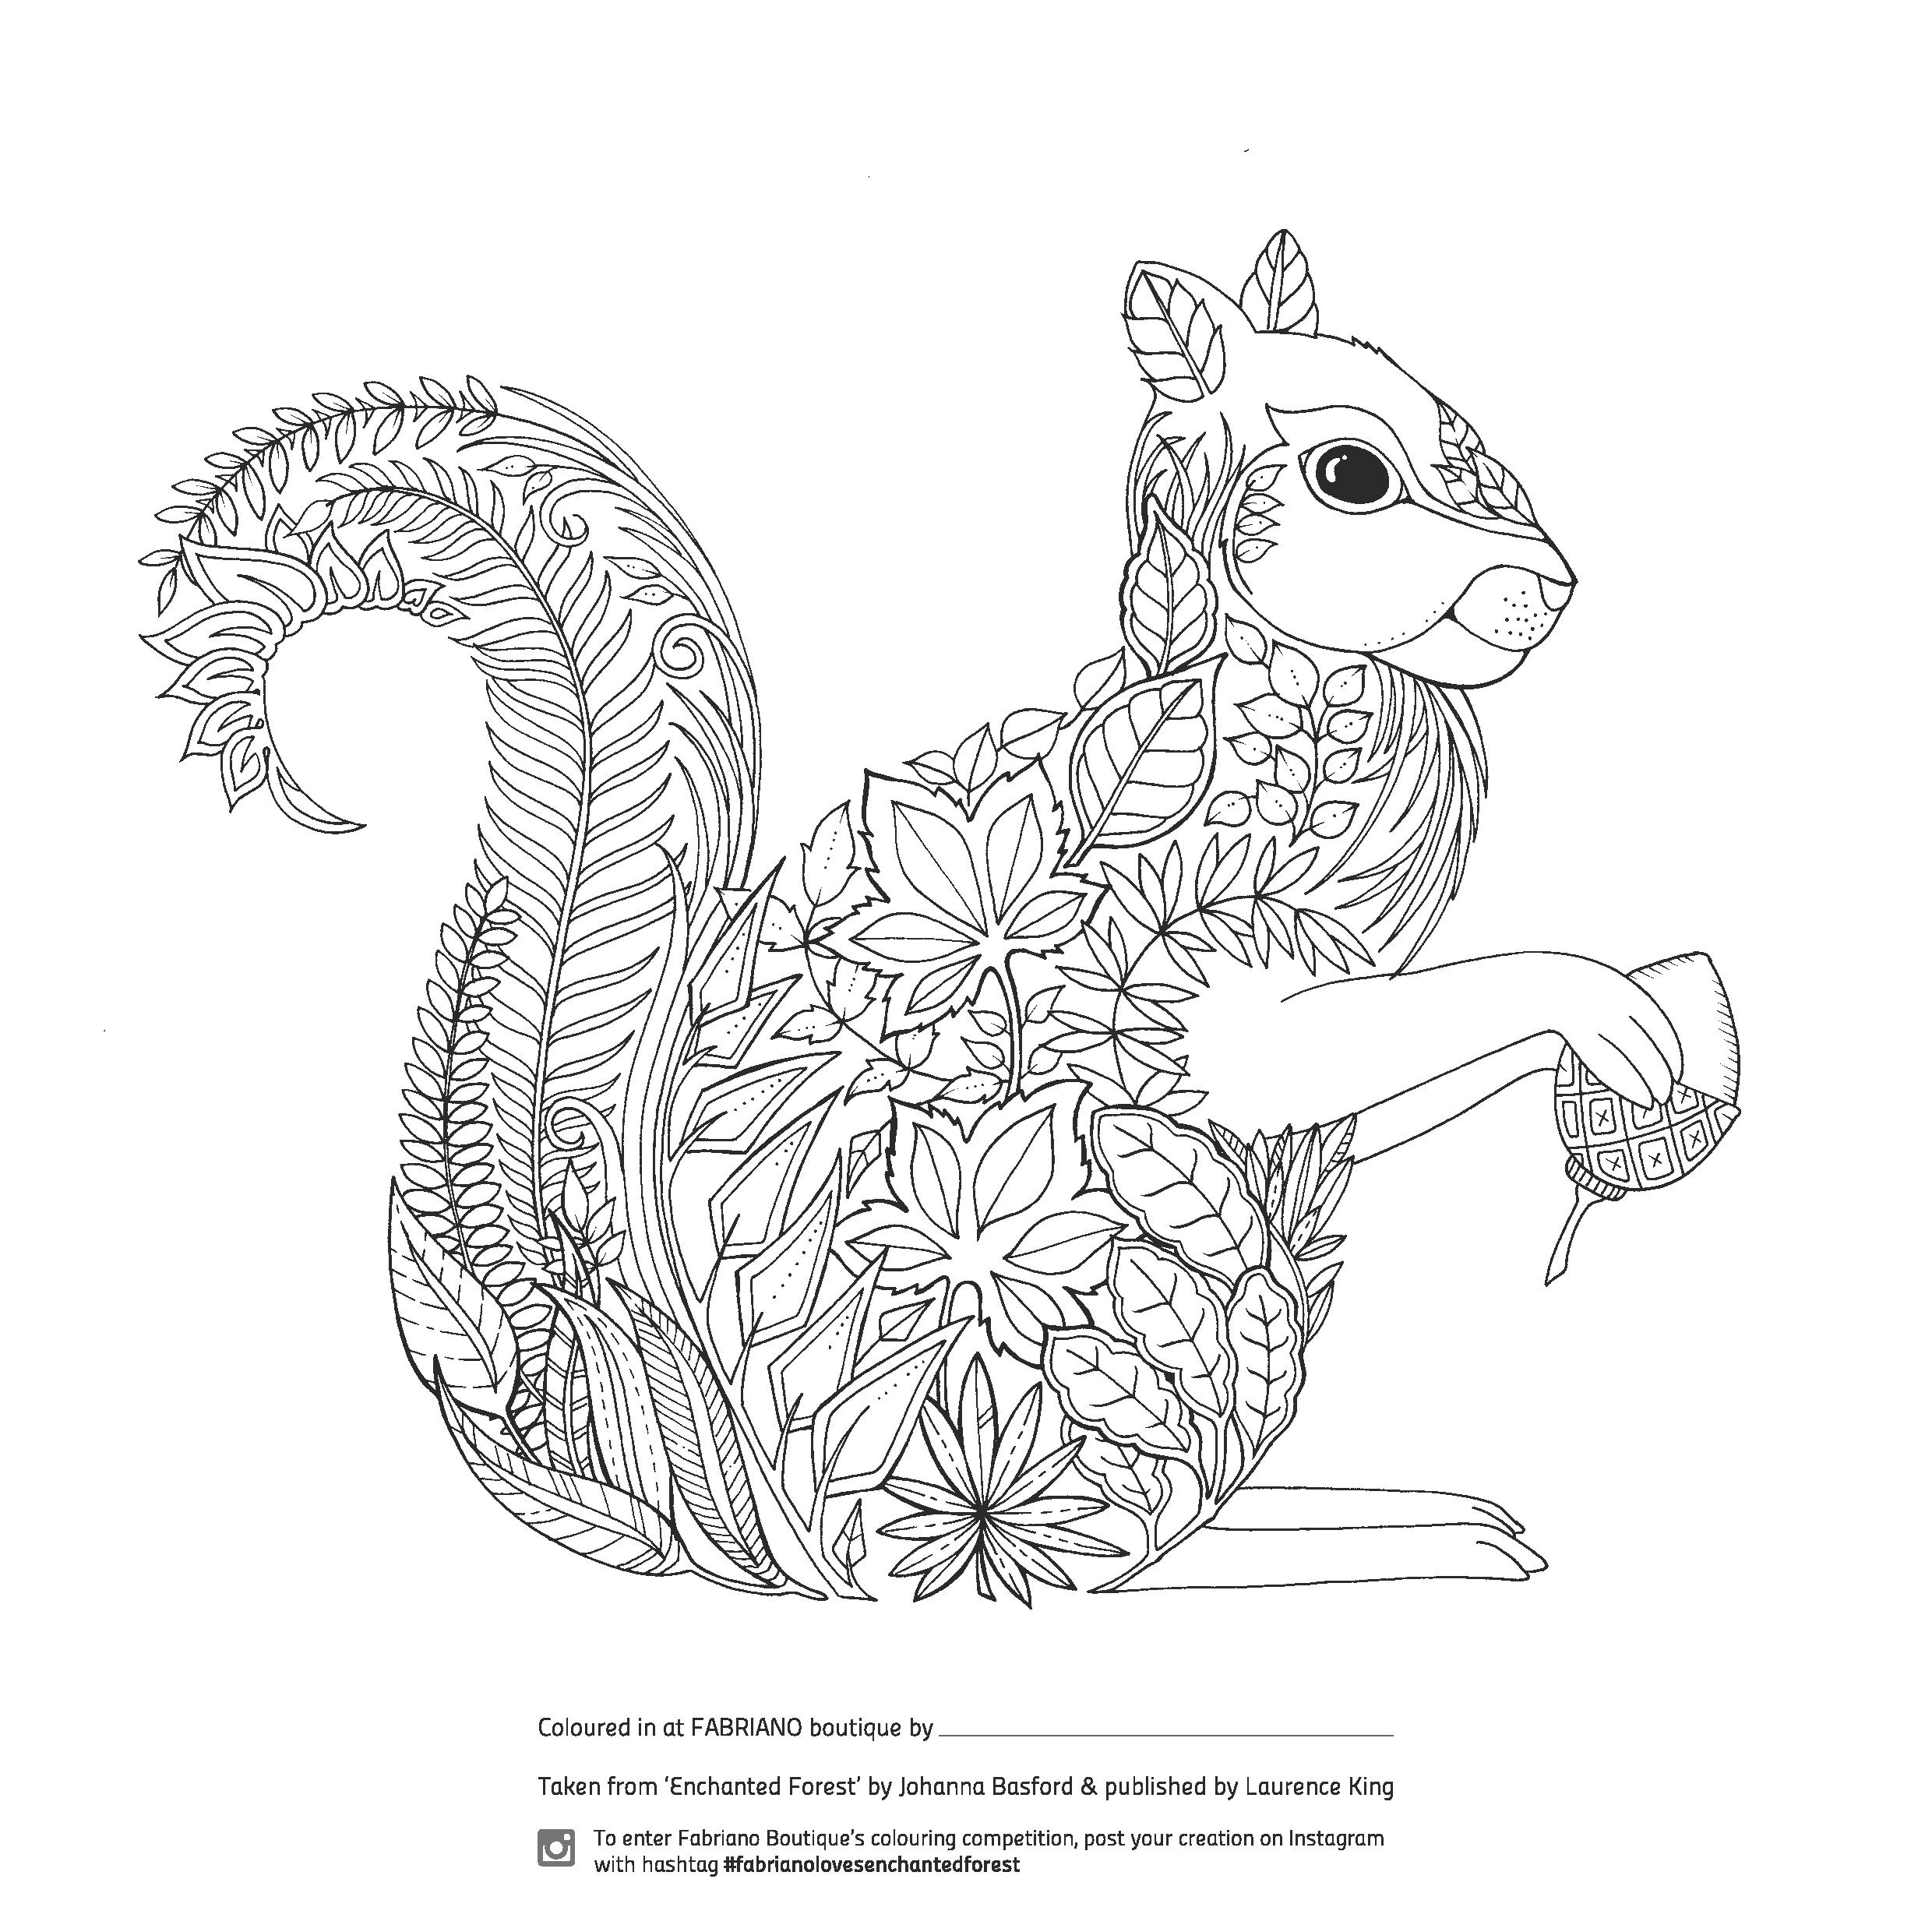 The enchanted forest coloring book uk - Enchanted Forest Grown Up Colouring Page In A Detailed Squirrel Design